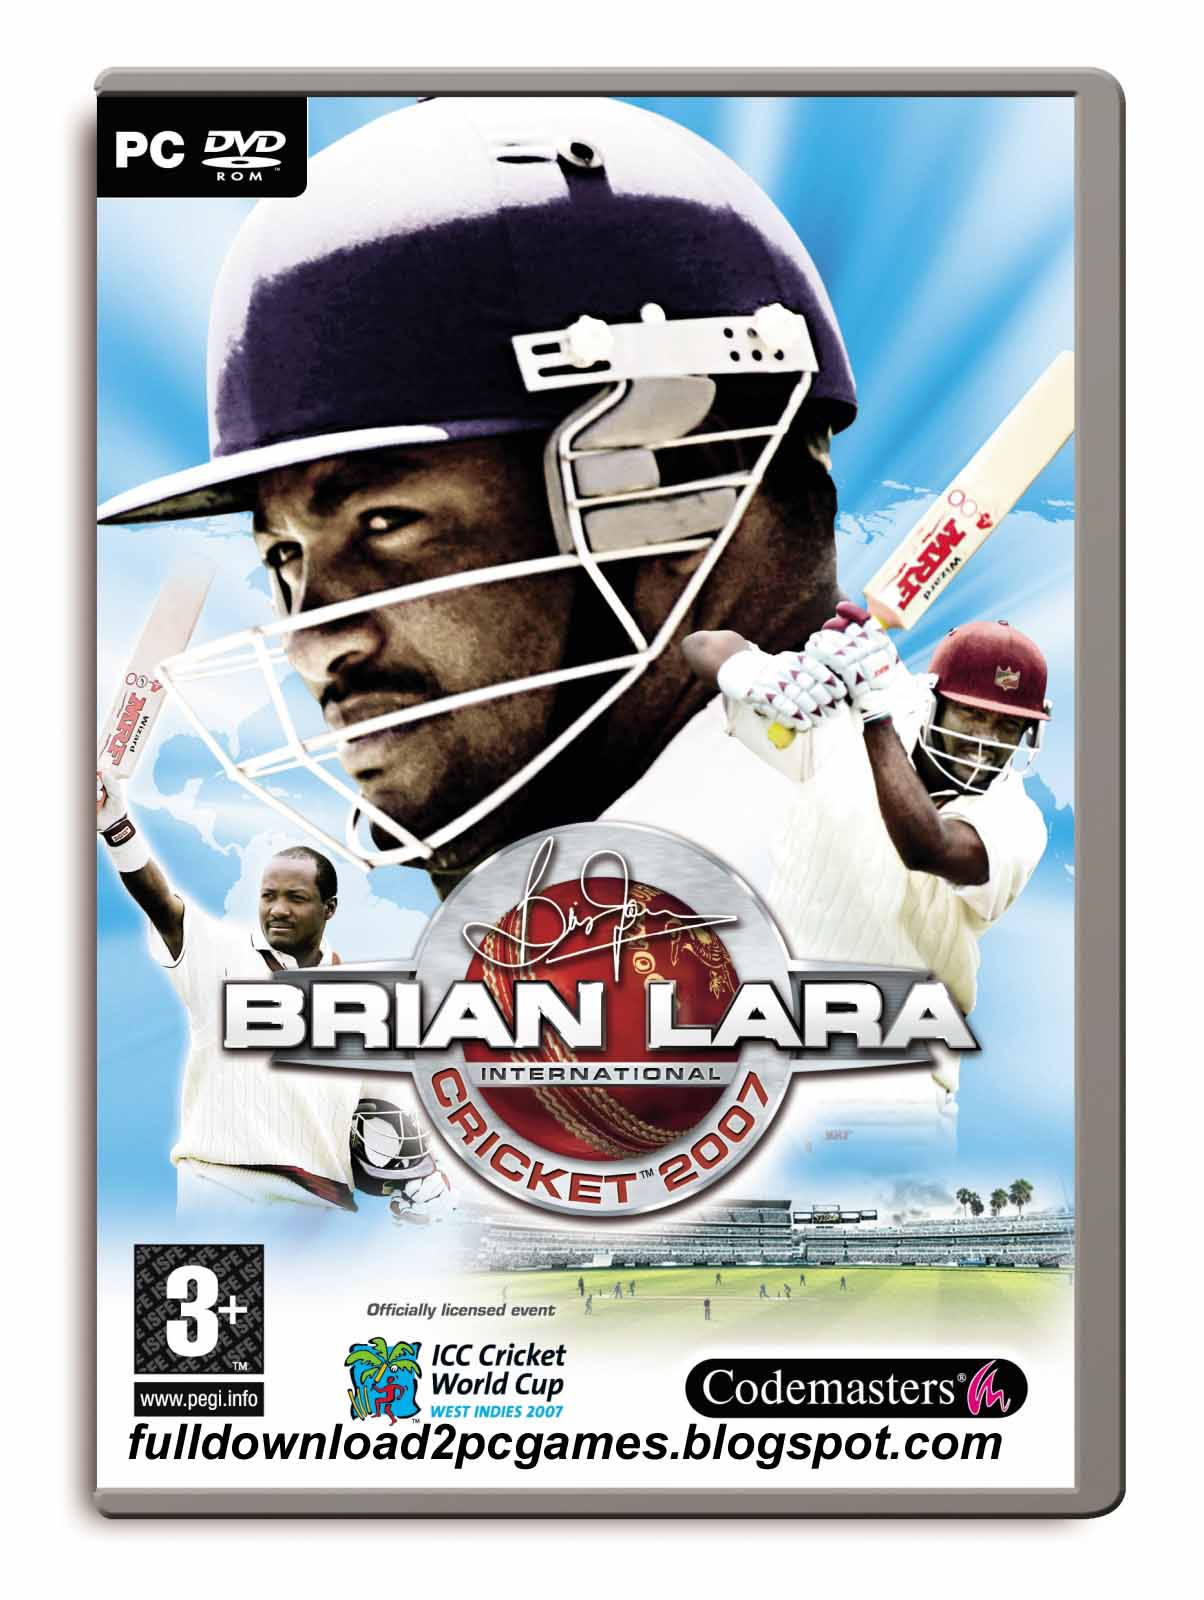 This Is A Wonderful One of The Most Popular Sports Video Game Developed And Published By  Brian Lara International Cricket 2007 Free Download PC Game